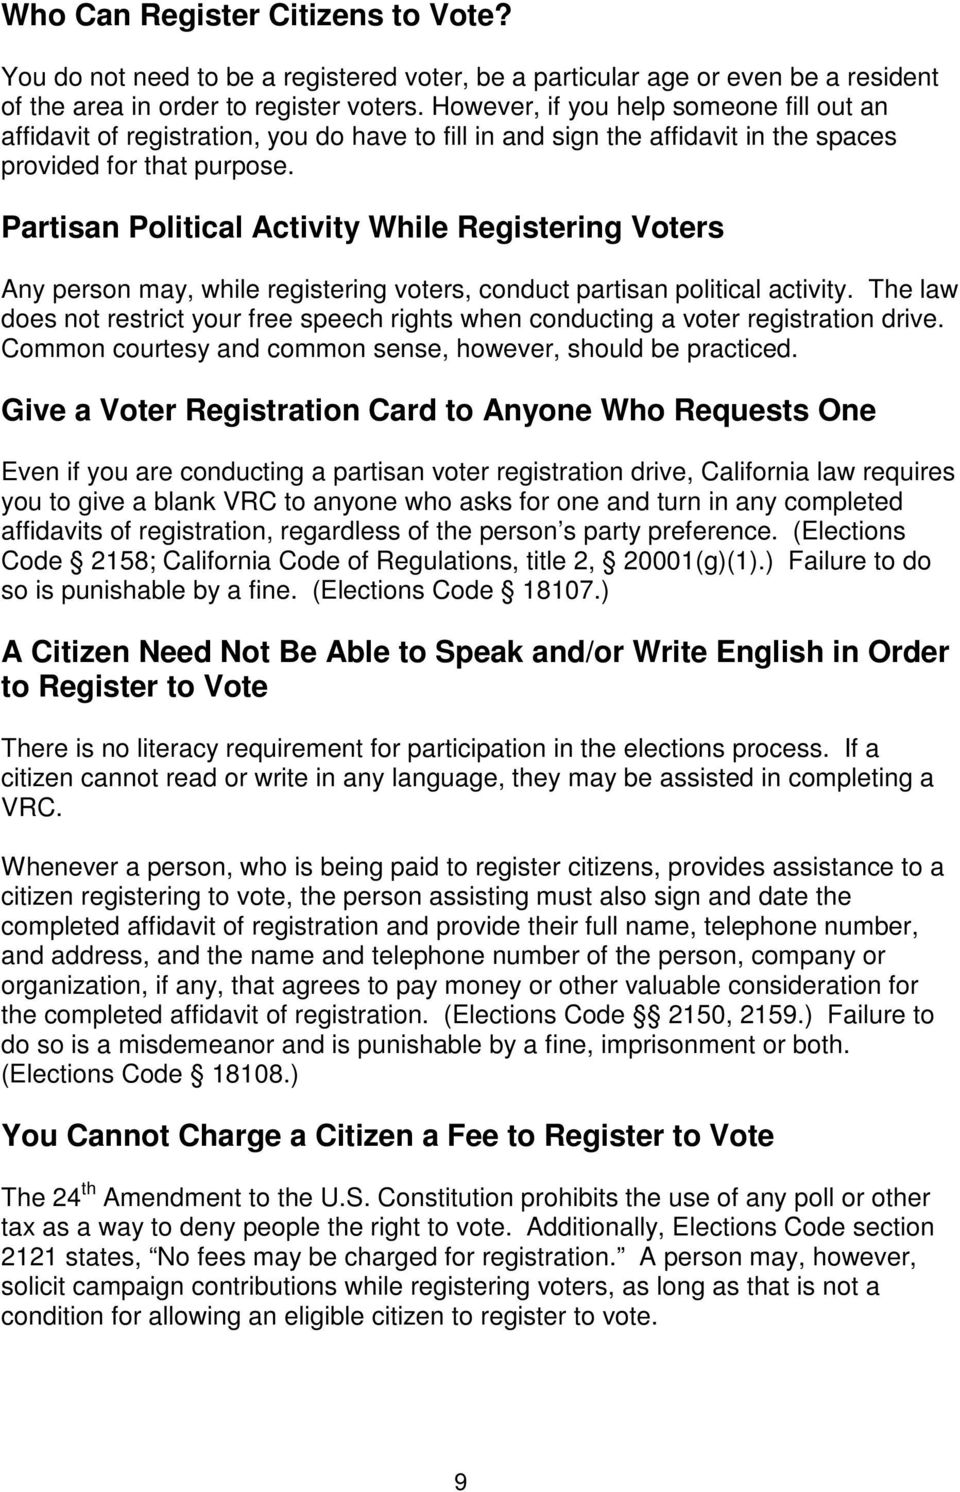 Partisan Political Activity While Registering Voters Any person may, while registering voters, conduct partisan political activity.